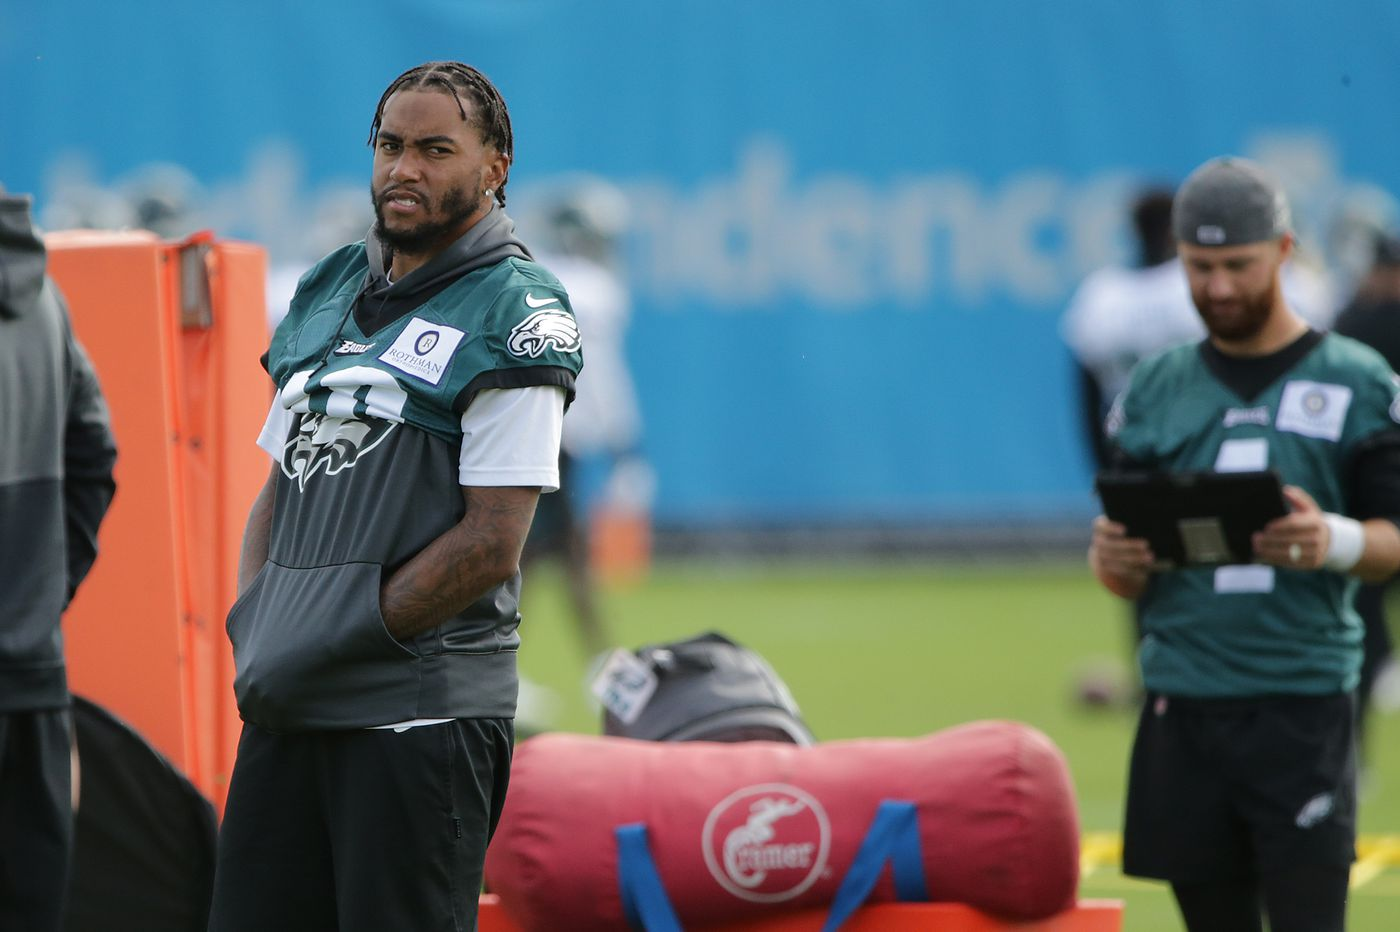 Time is running out for the Eagles to justify bringing back injury-prone DeSean Jackson | Jeff McLane